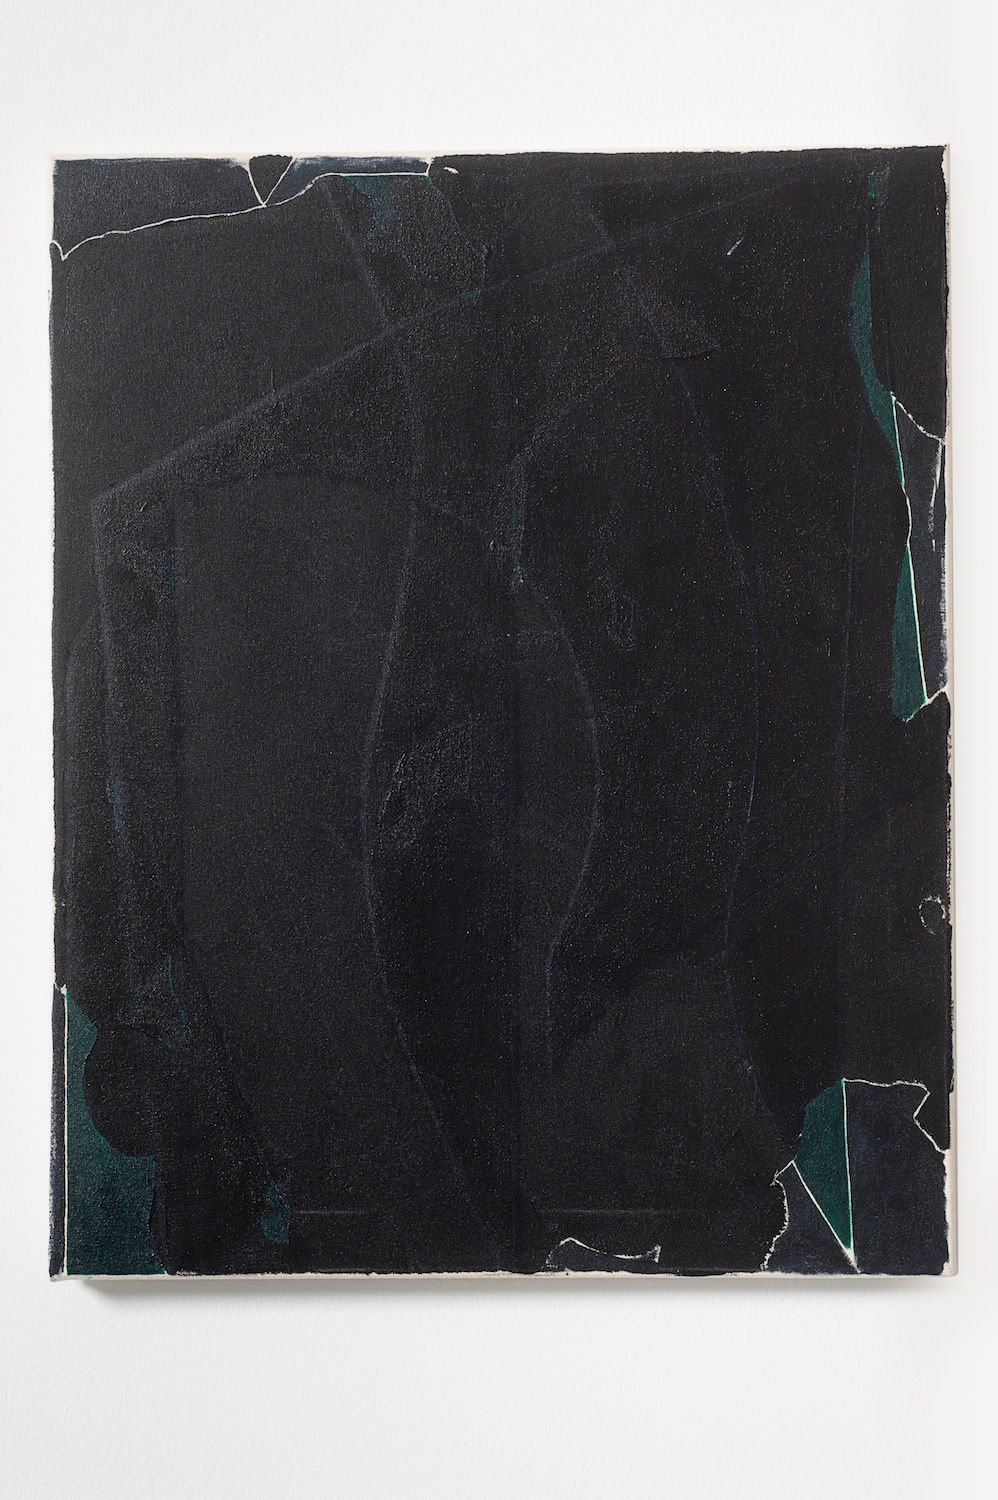 "Zak Prekop Black Relief 2011 Oil and paper on canvas 25"" x 20"" ZP154"